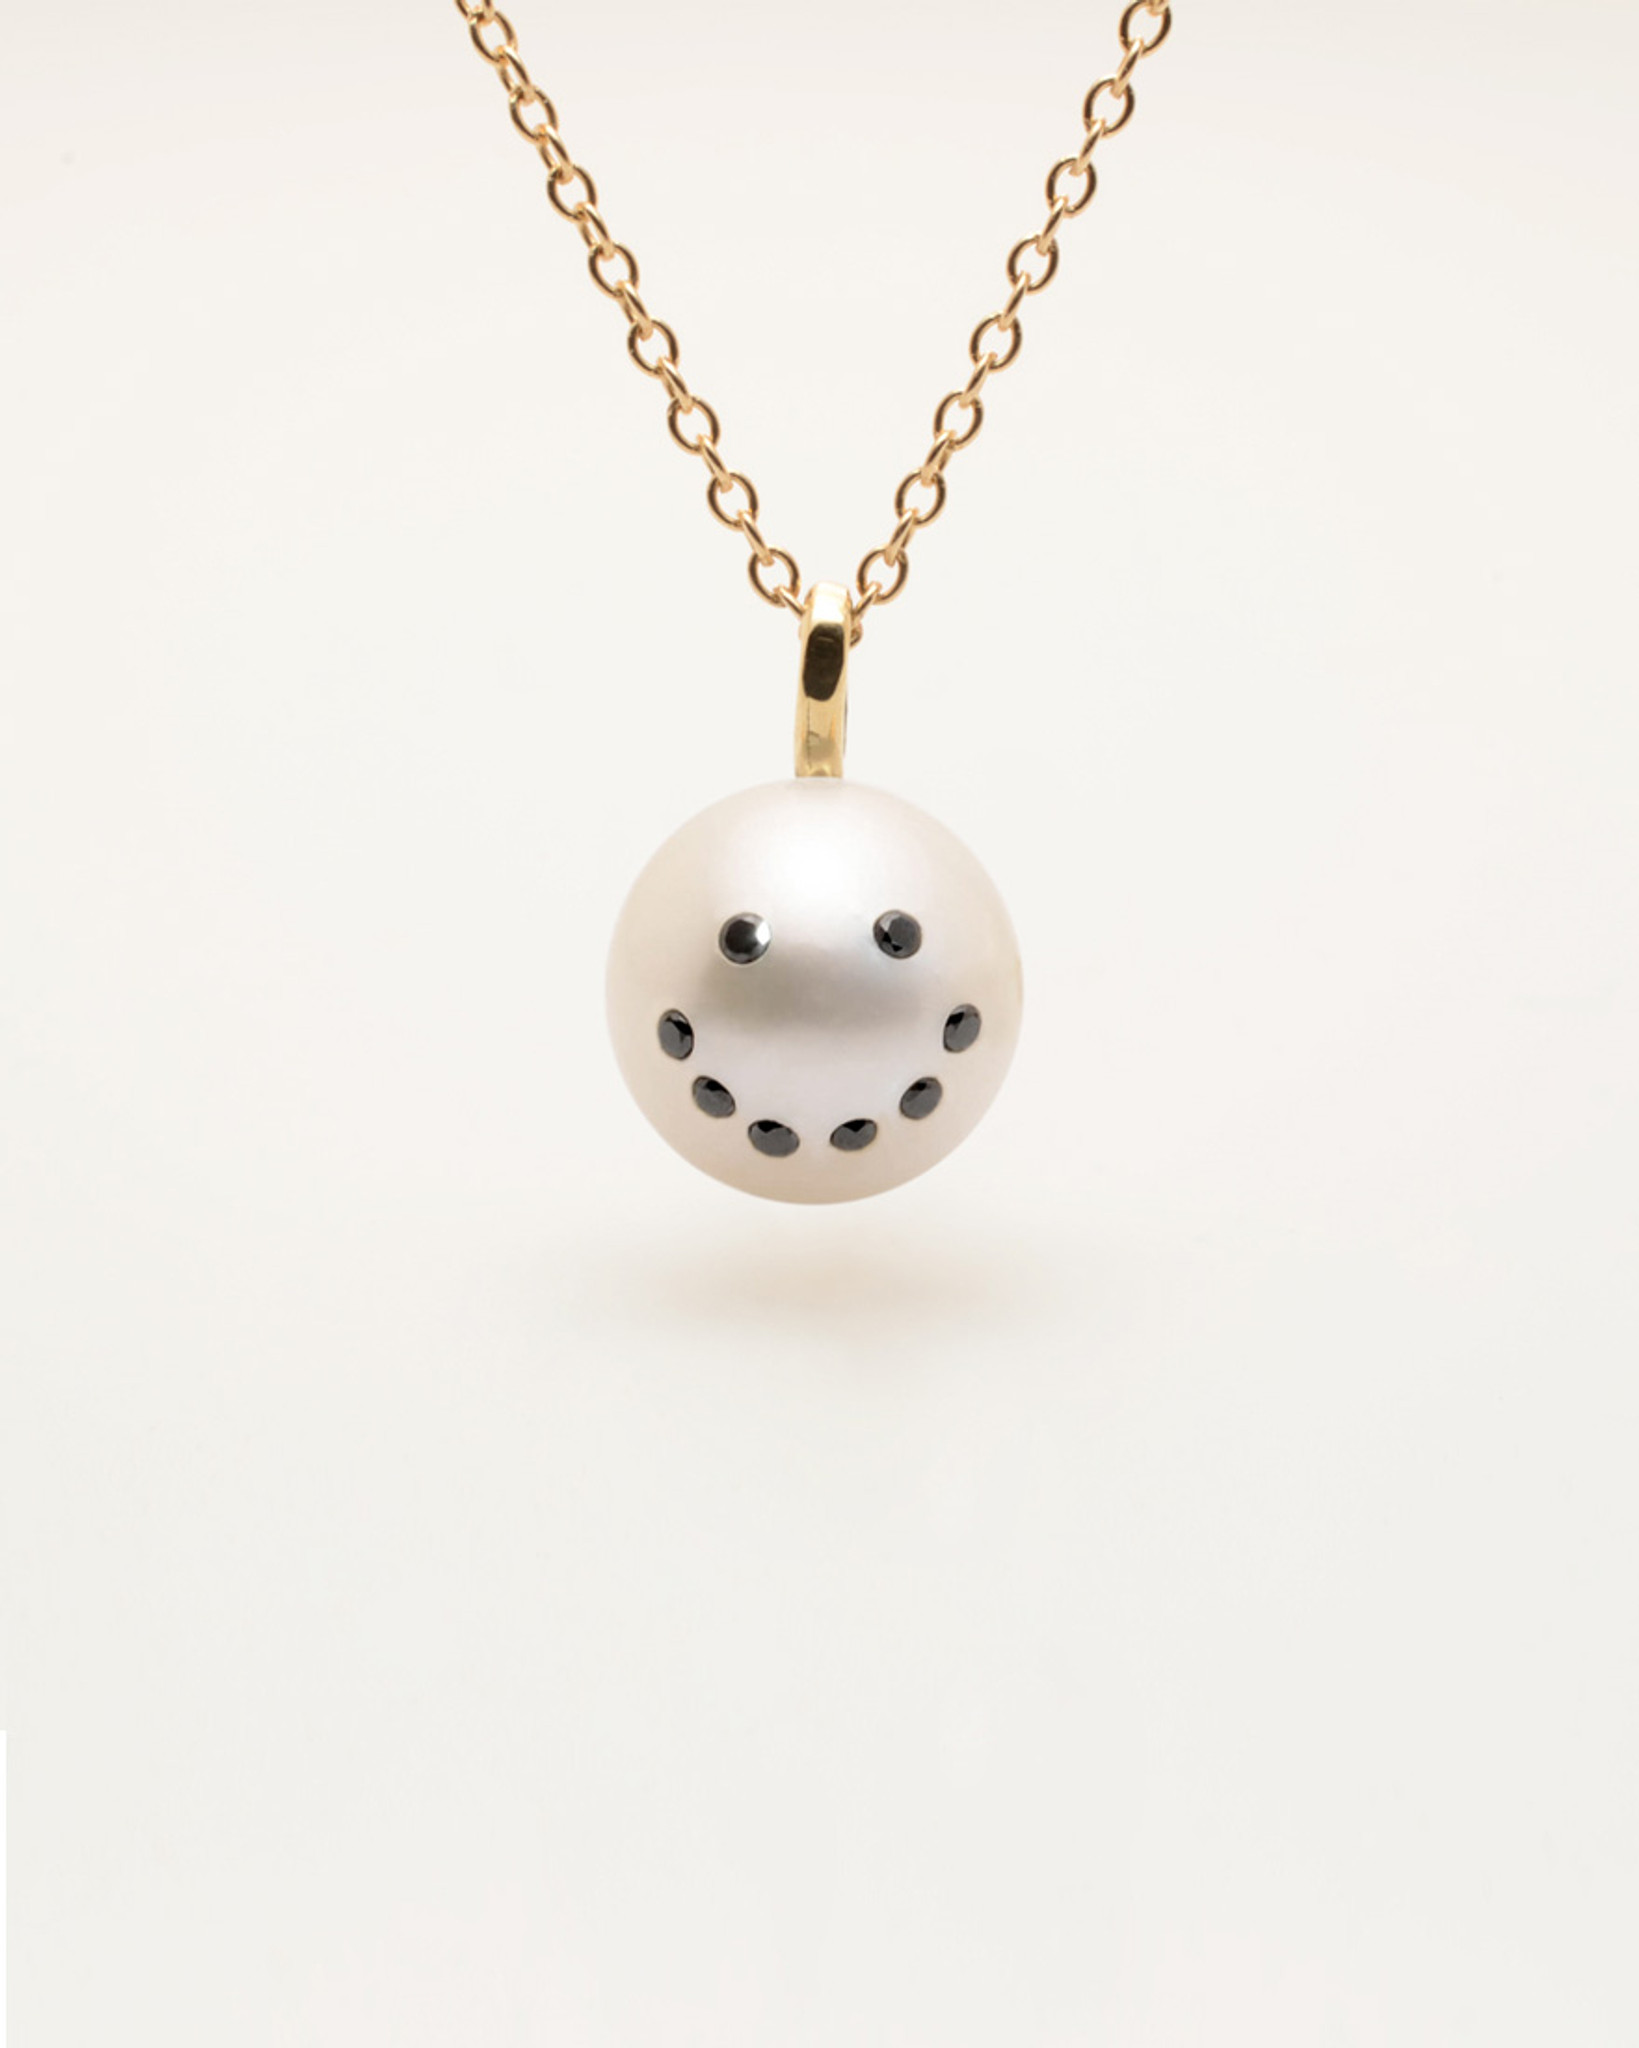 Our Bestselling Cultured Freshwater Pearl Charm Pendant Necklace with Smiley Emoji Diamond Pave and 14k Gold Chain by Nektar De Stagni (8-9 mm. Length 16 inches). The Perfect Gift.